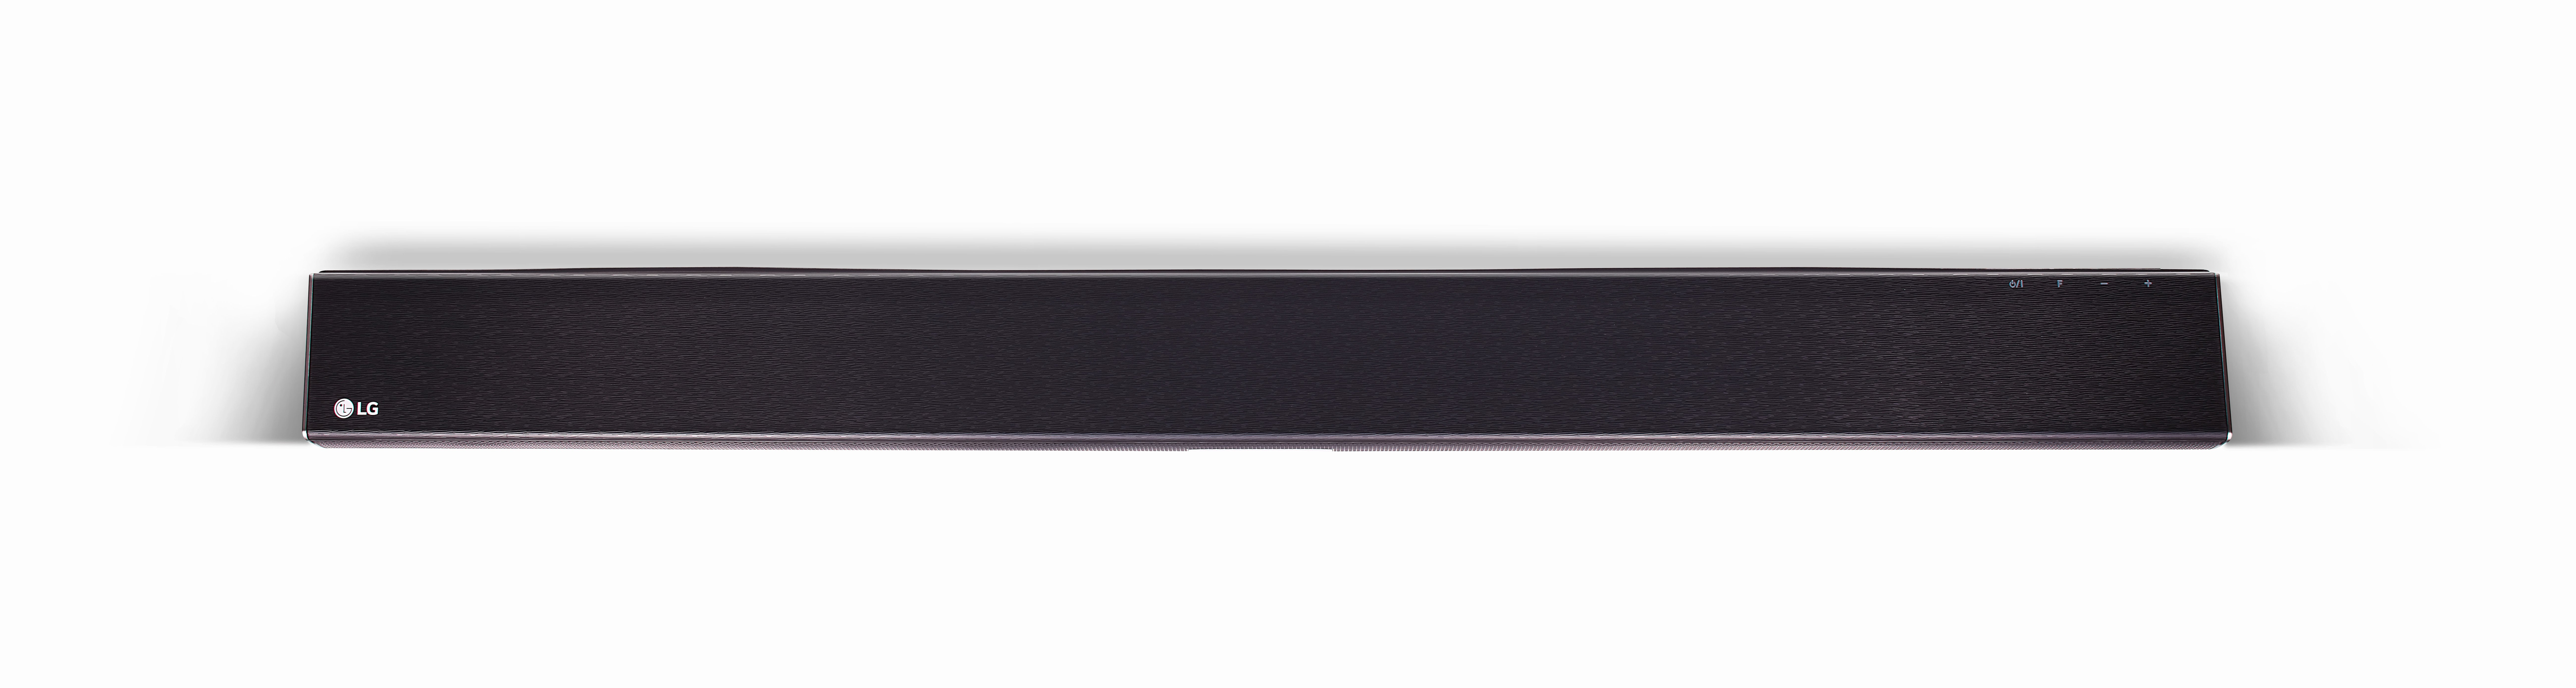 NEW-LG-SJ4-2-1-Channel-Wireless-Soundbar-with-Bluetooth